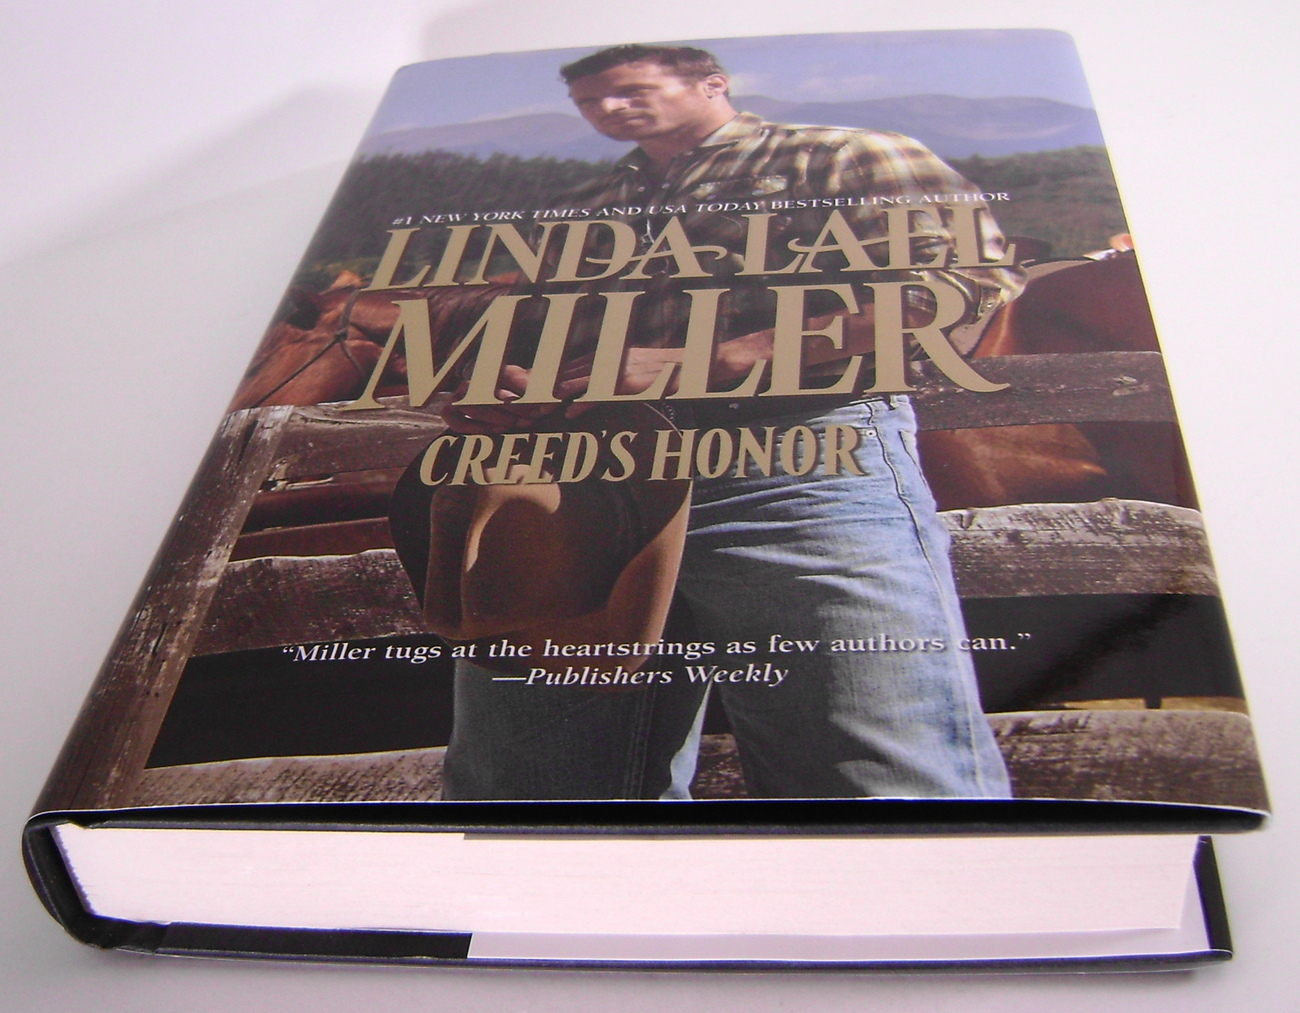 Creeds Honor Conner By Linda Lael Miller BCE HC